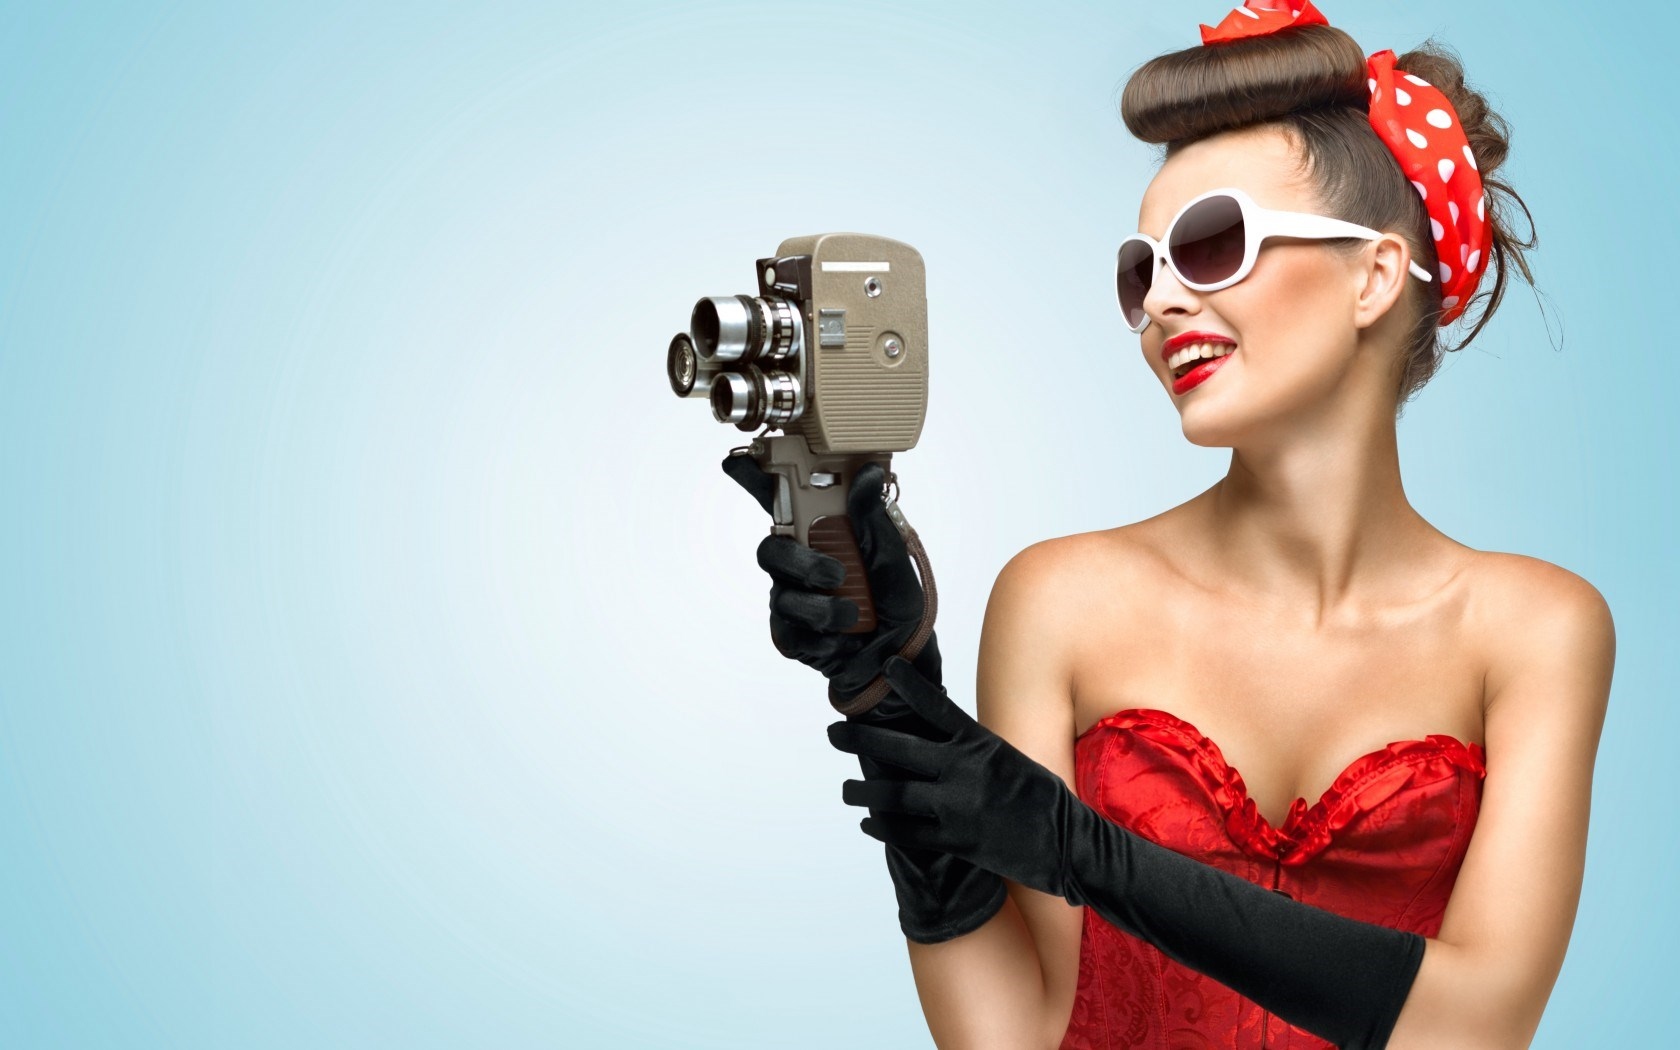 retro-girl-sunglasses-gloves-hd-wallpaper